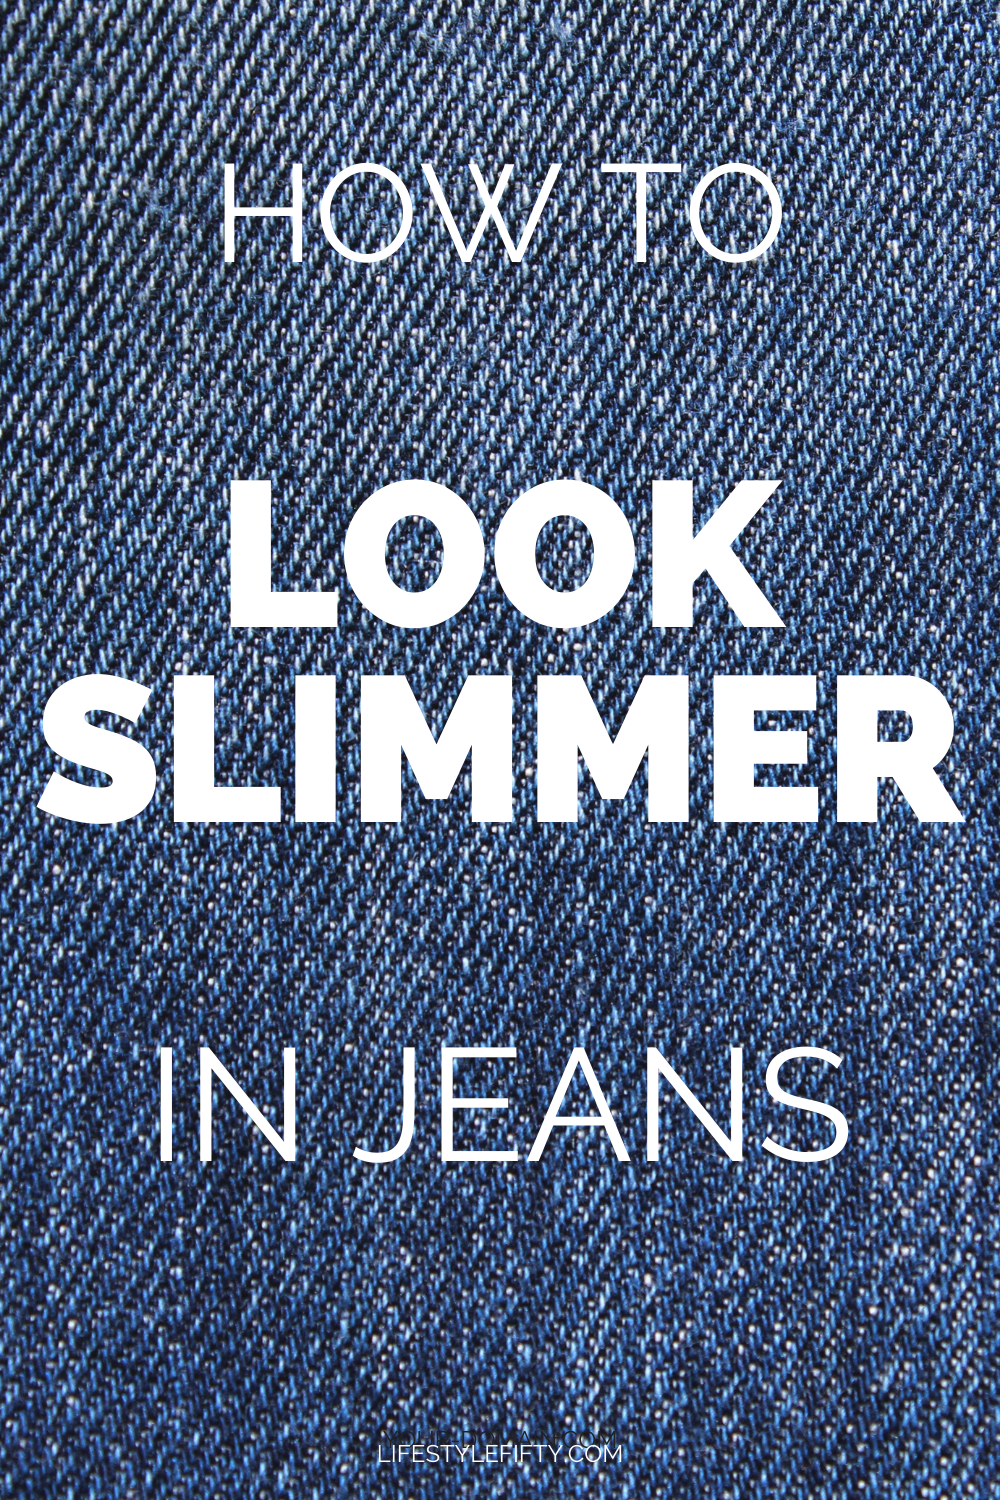 look slimmer in jeans, text overlay on denim